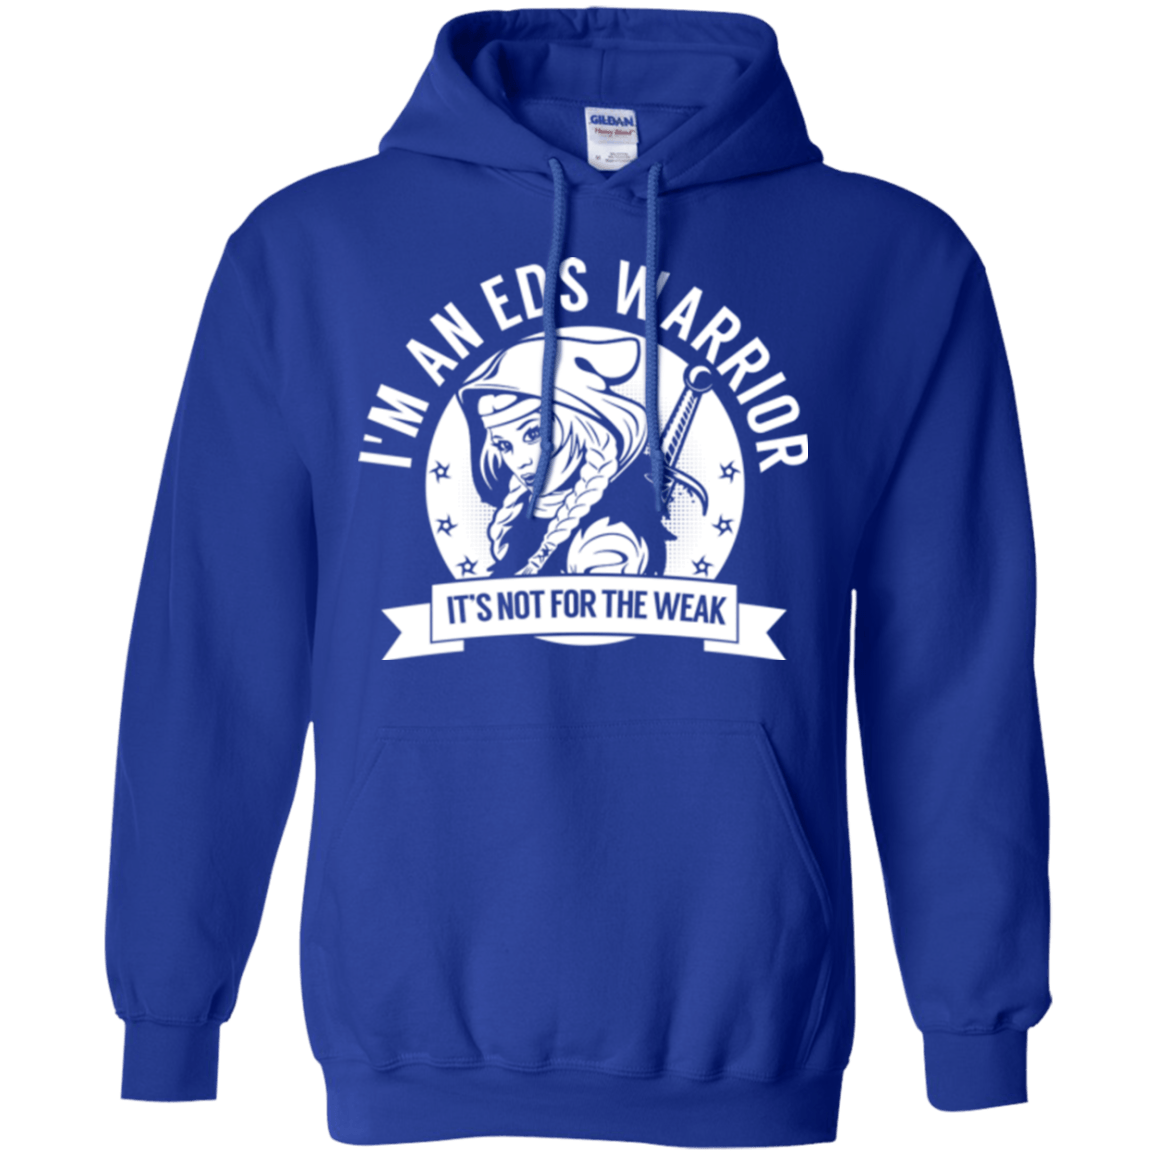 Sweatshirts - Ehlers Danlos Syndrome - EDS Warrior Hooded Pullover Hoodie 8 Oz.